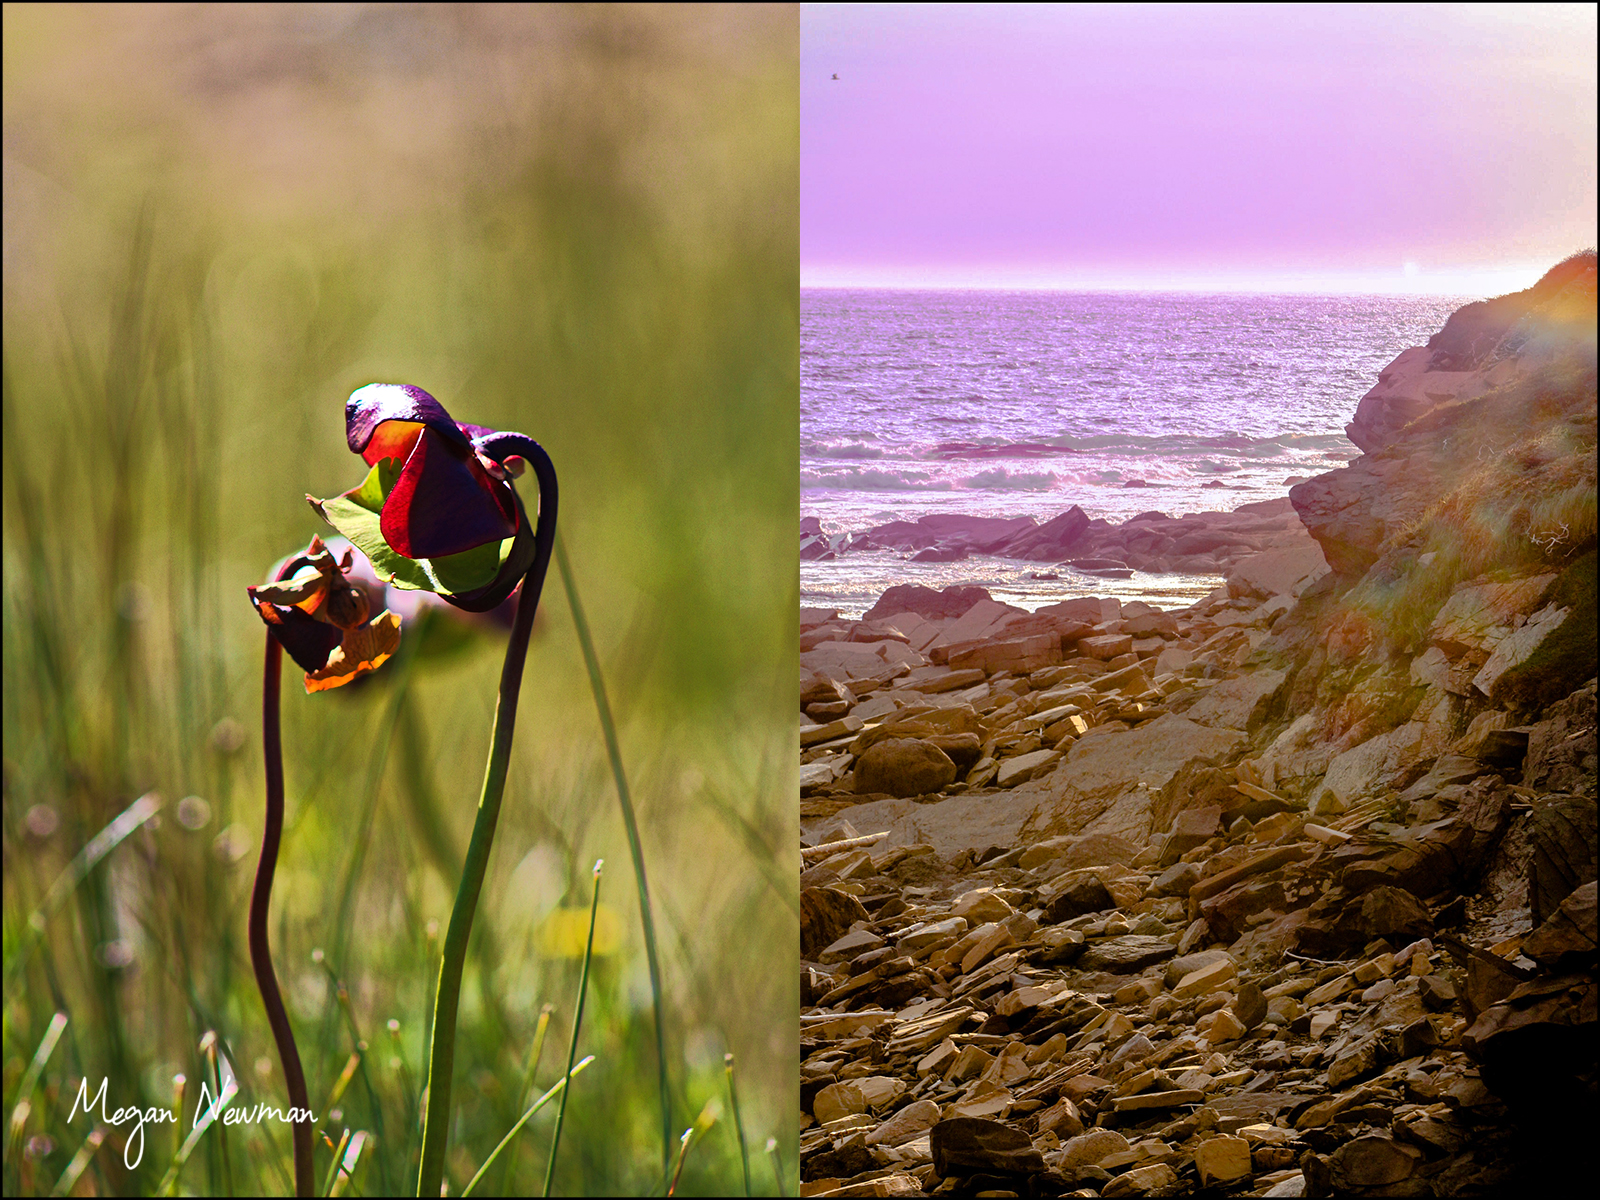 Pitcher plant and coastline Newfoundland Megan Newmann ©